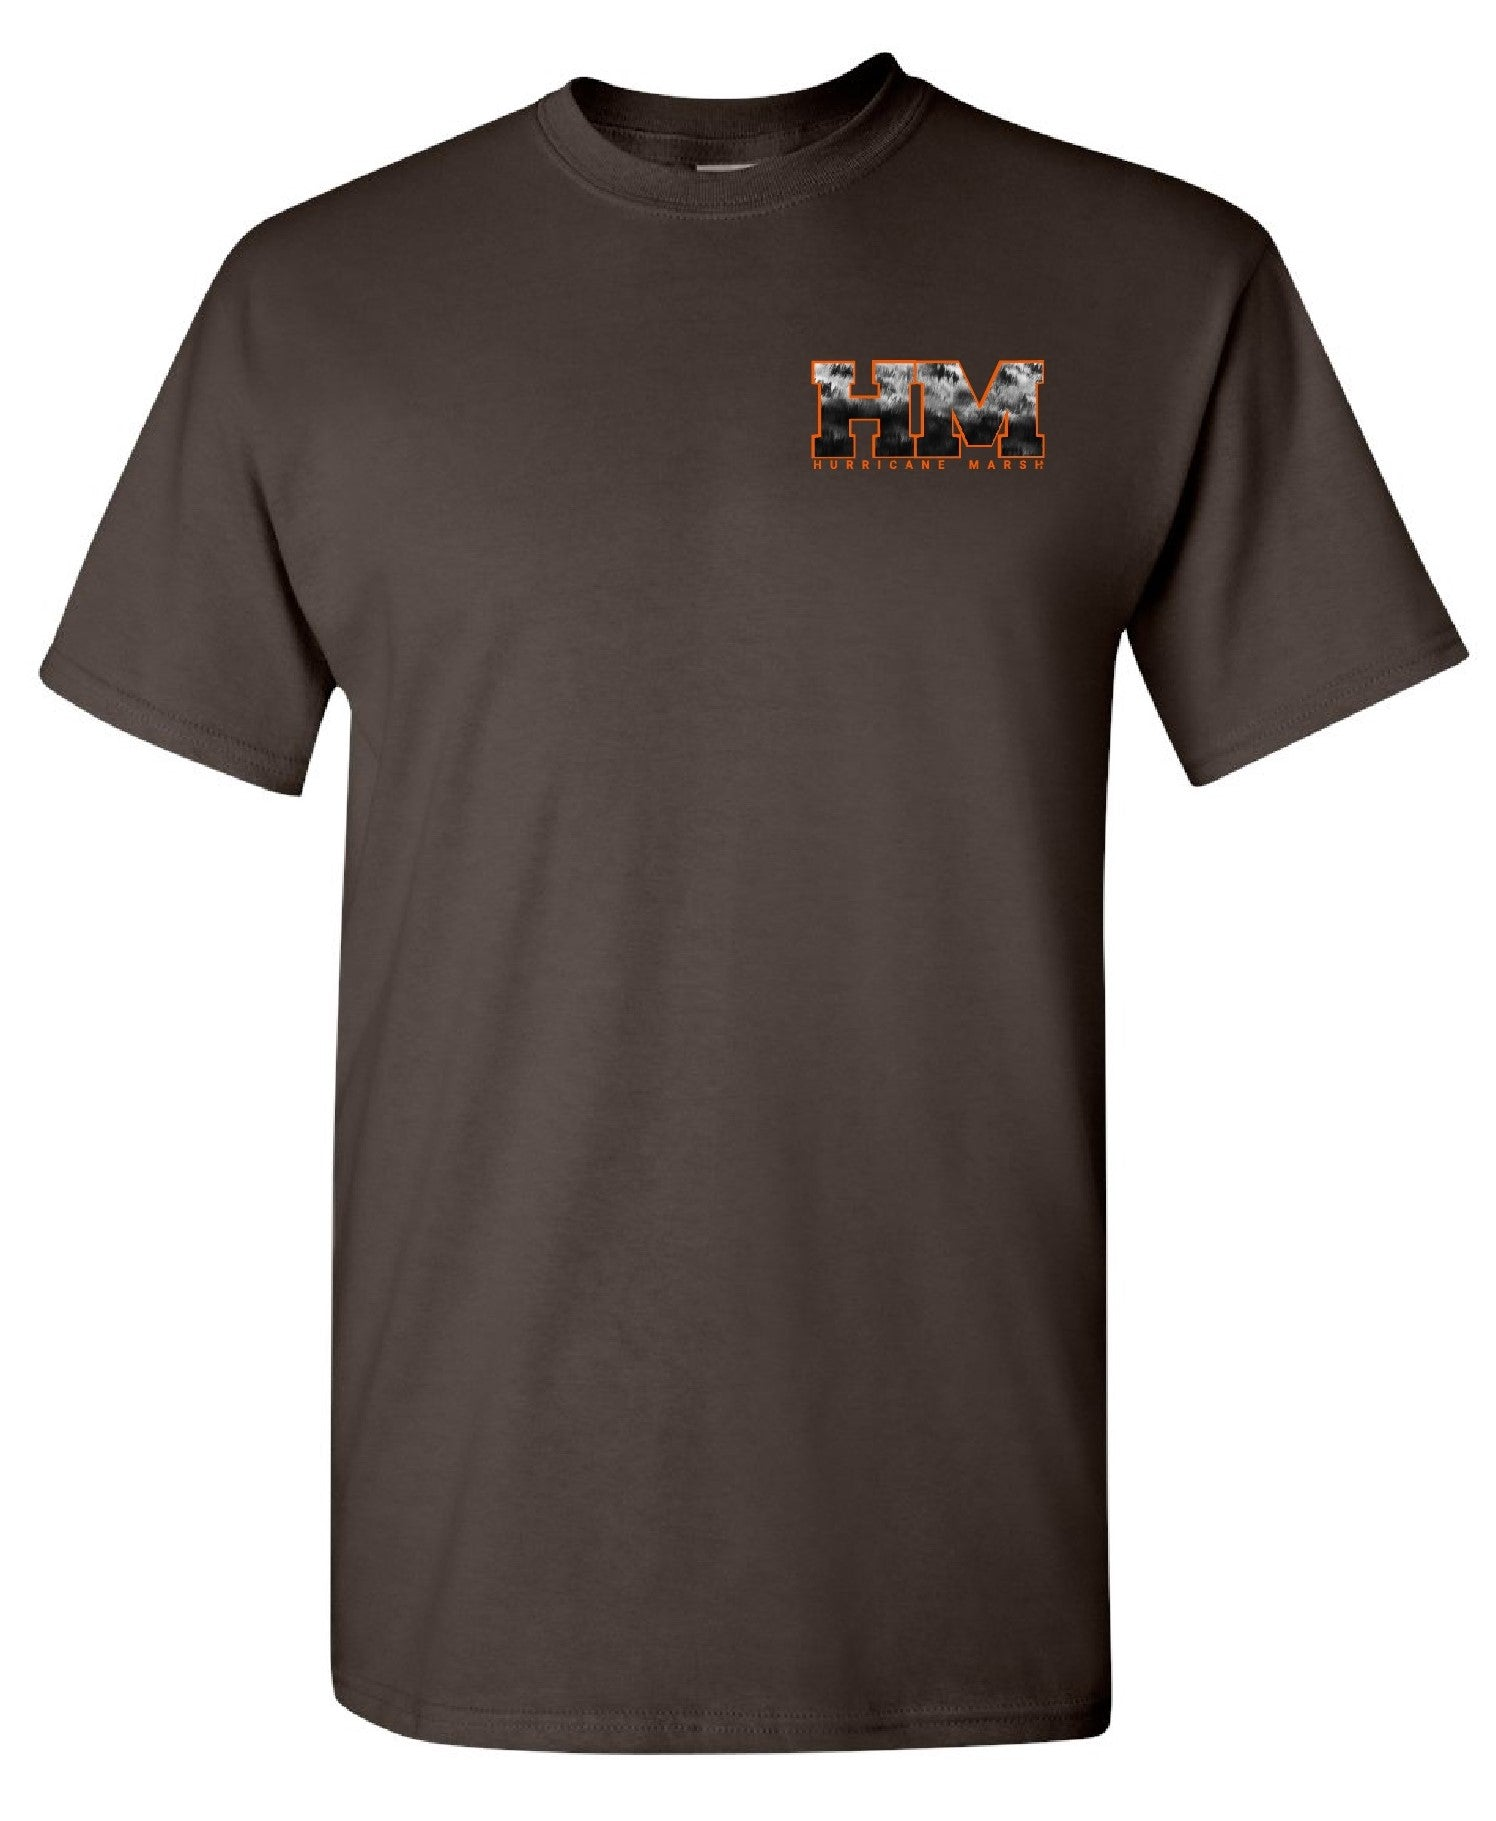 "Hurricane Marsh ""Tarbelly"" Short Sleeve T-Shirt Brown"